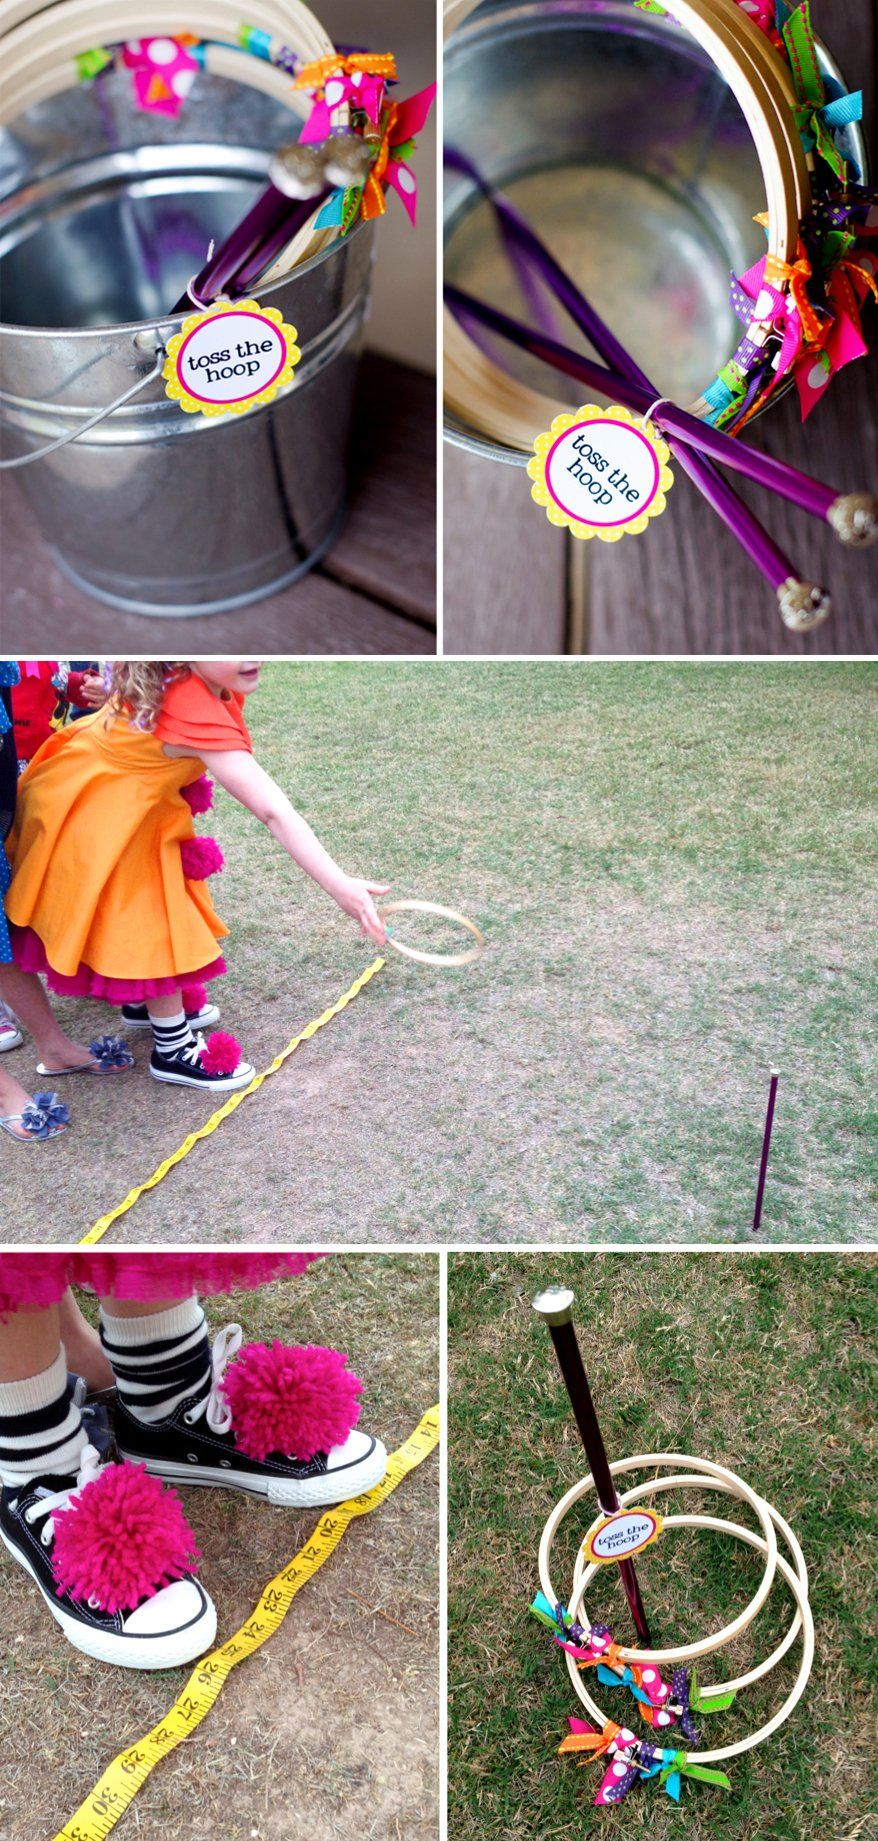 Lalaloopsy Toss the Hoop Party Games #lalaloopsy